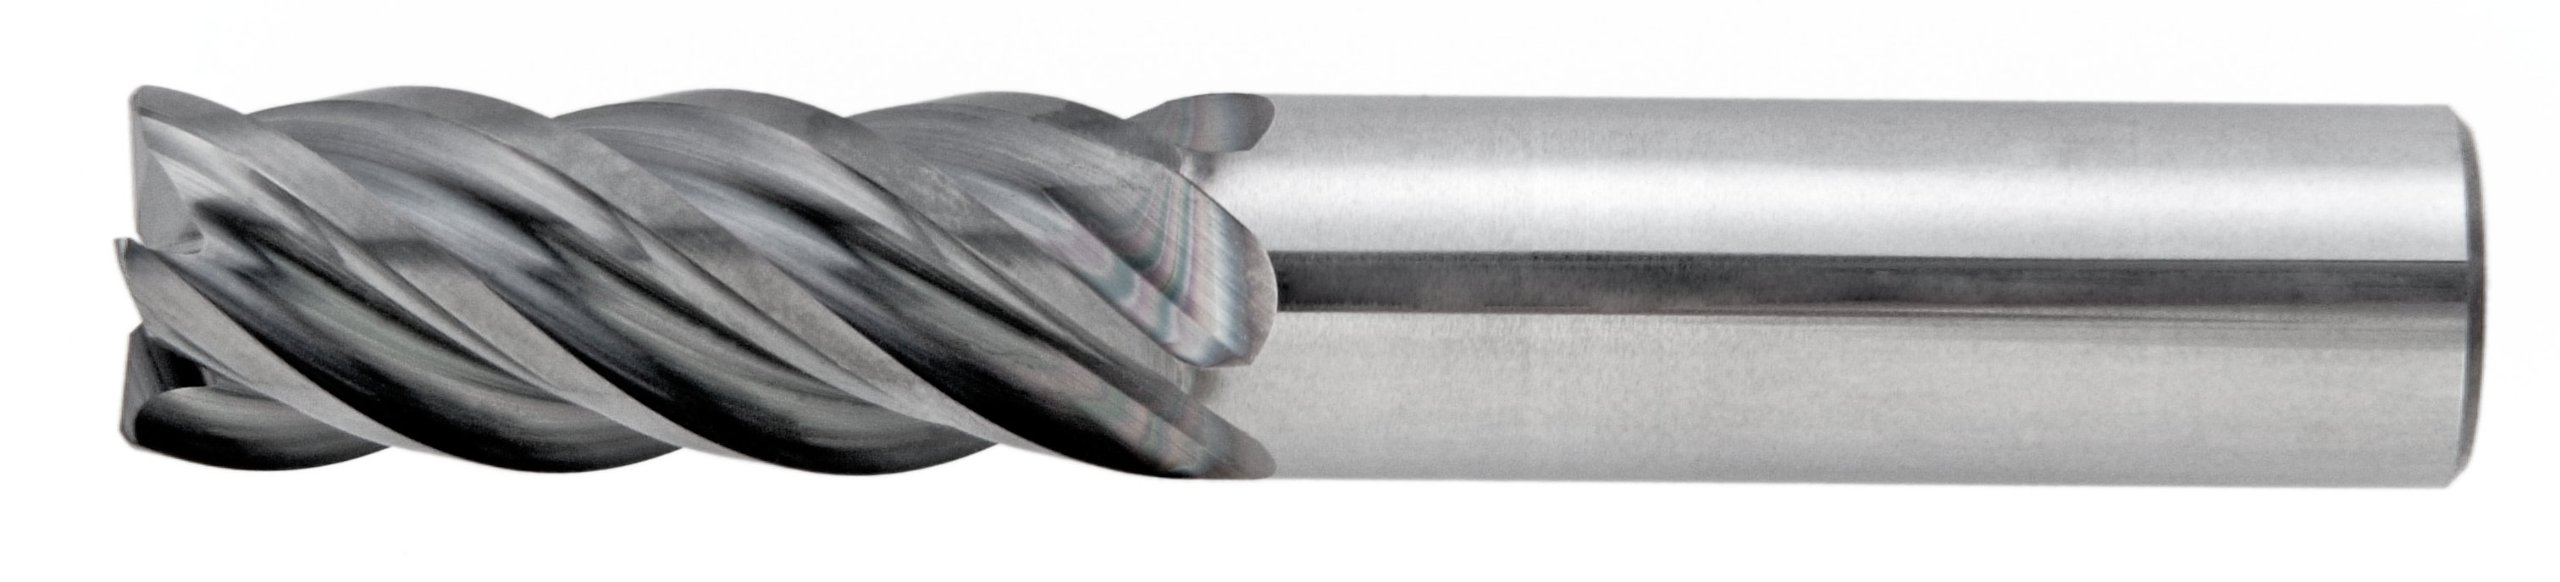 Niagara Cutter N68625 Carbide Square Nose End Mill, Inch, AlCrN Finish, Roughing and Finishing Cut, Non-Center Cutting, 5 Flutes, 2.5'' Overall Length, 0.250'' Cutting Diameter, 0.250'' Shank Diameter